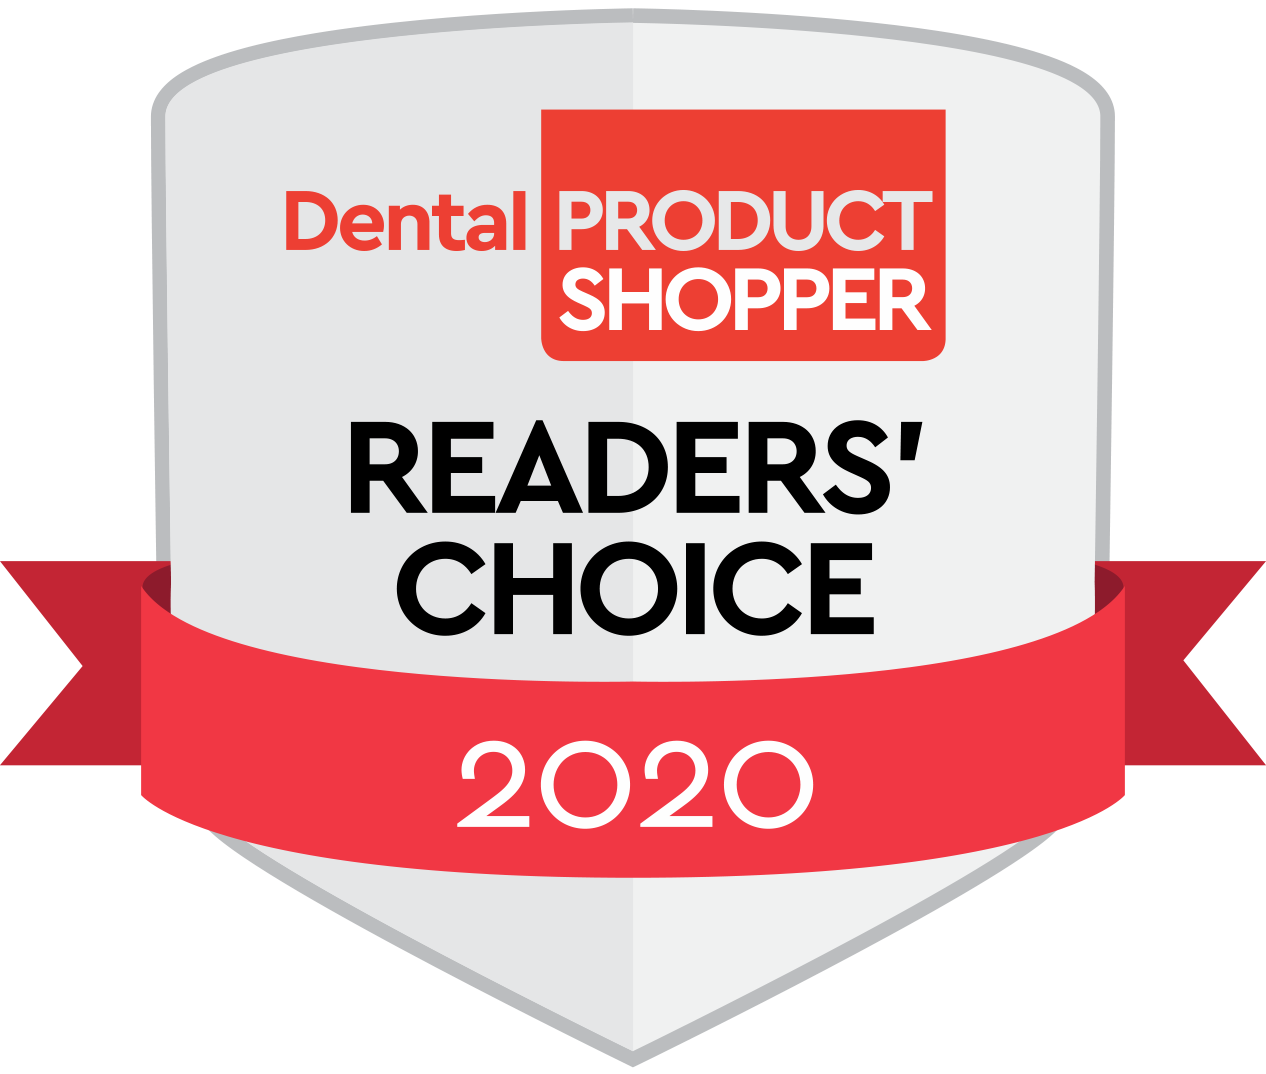 Dental Product Shopper Readers' Choice 2020